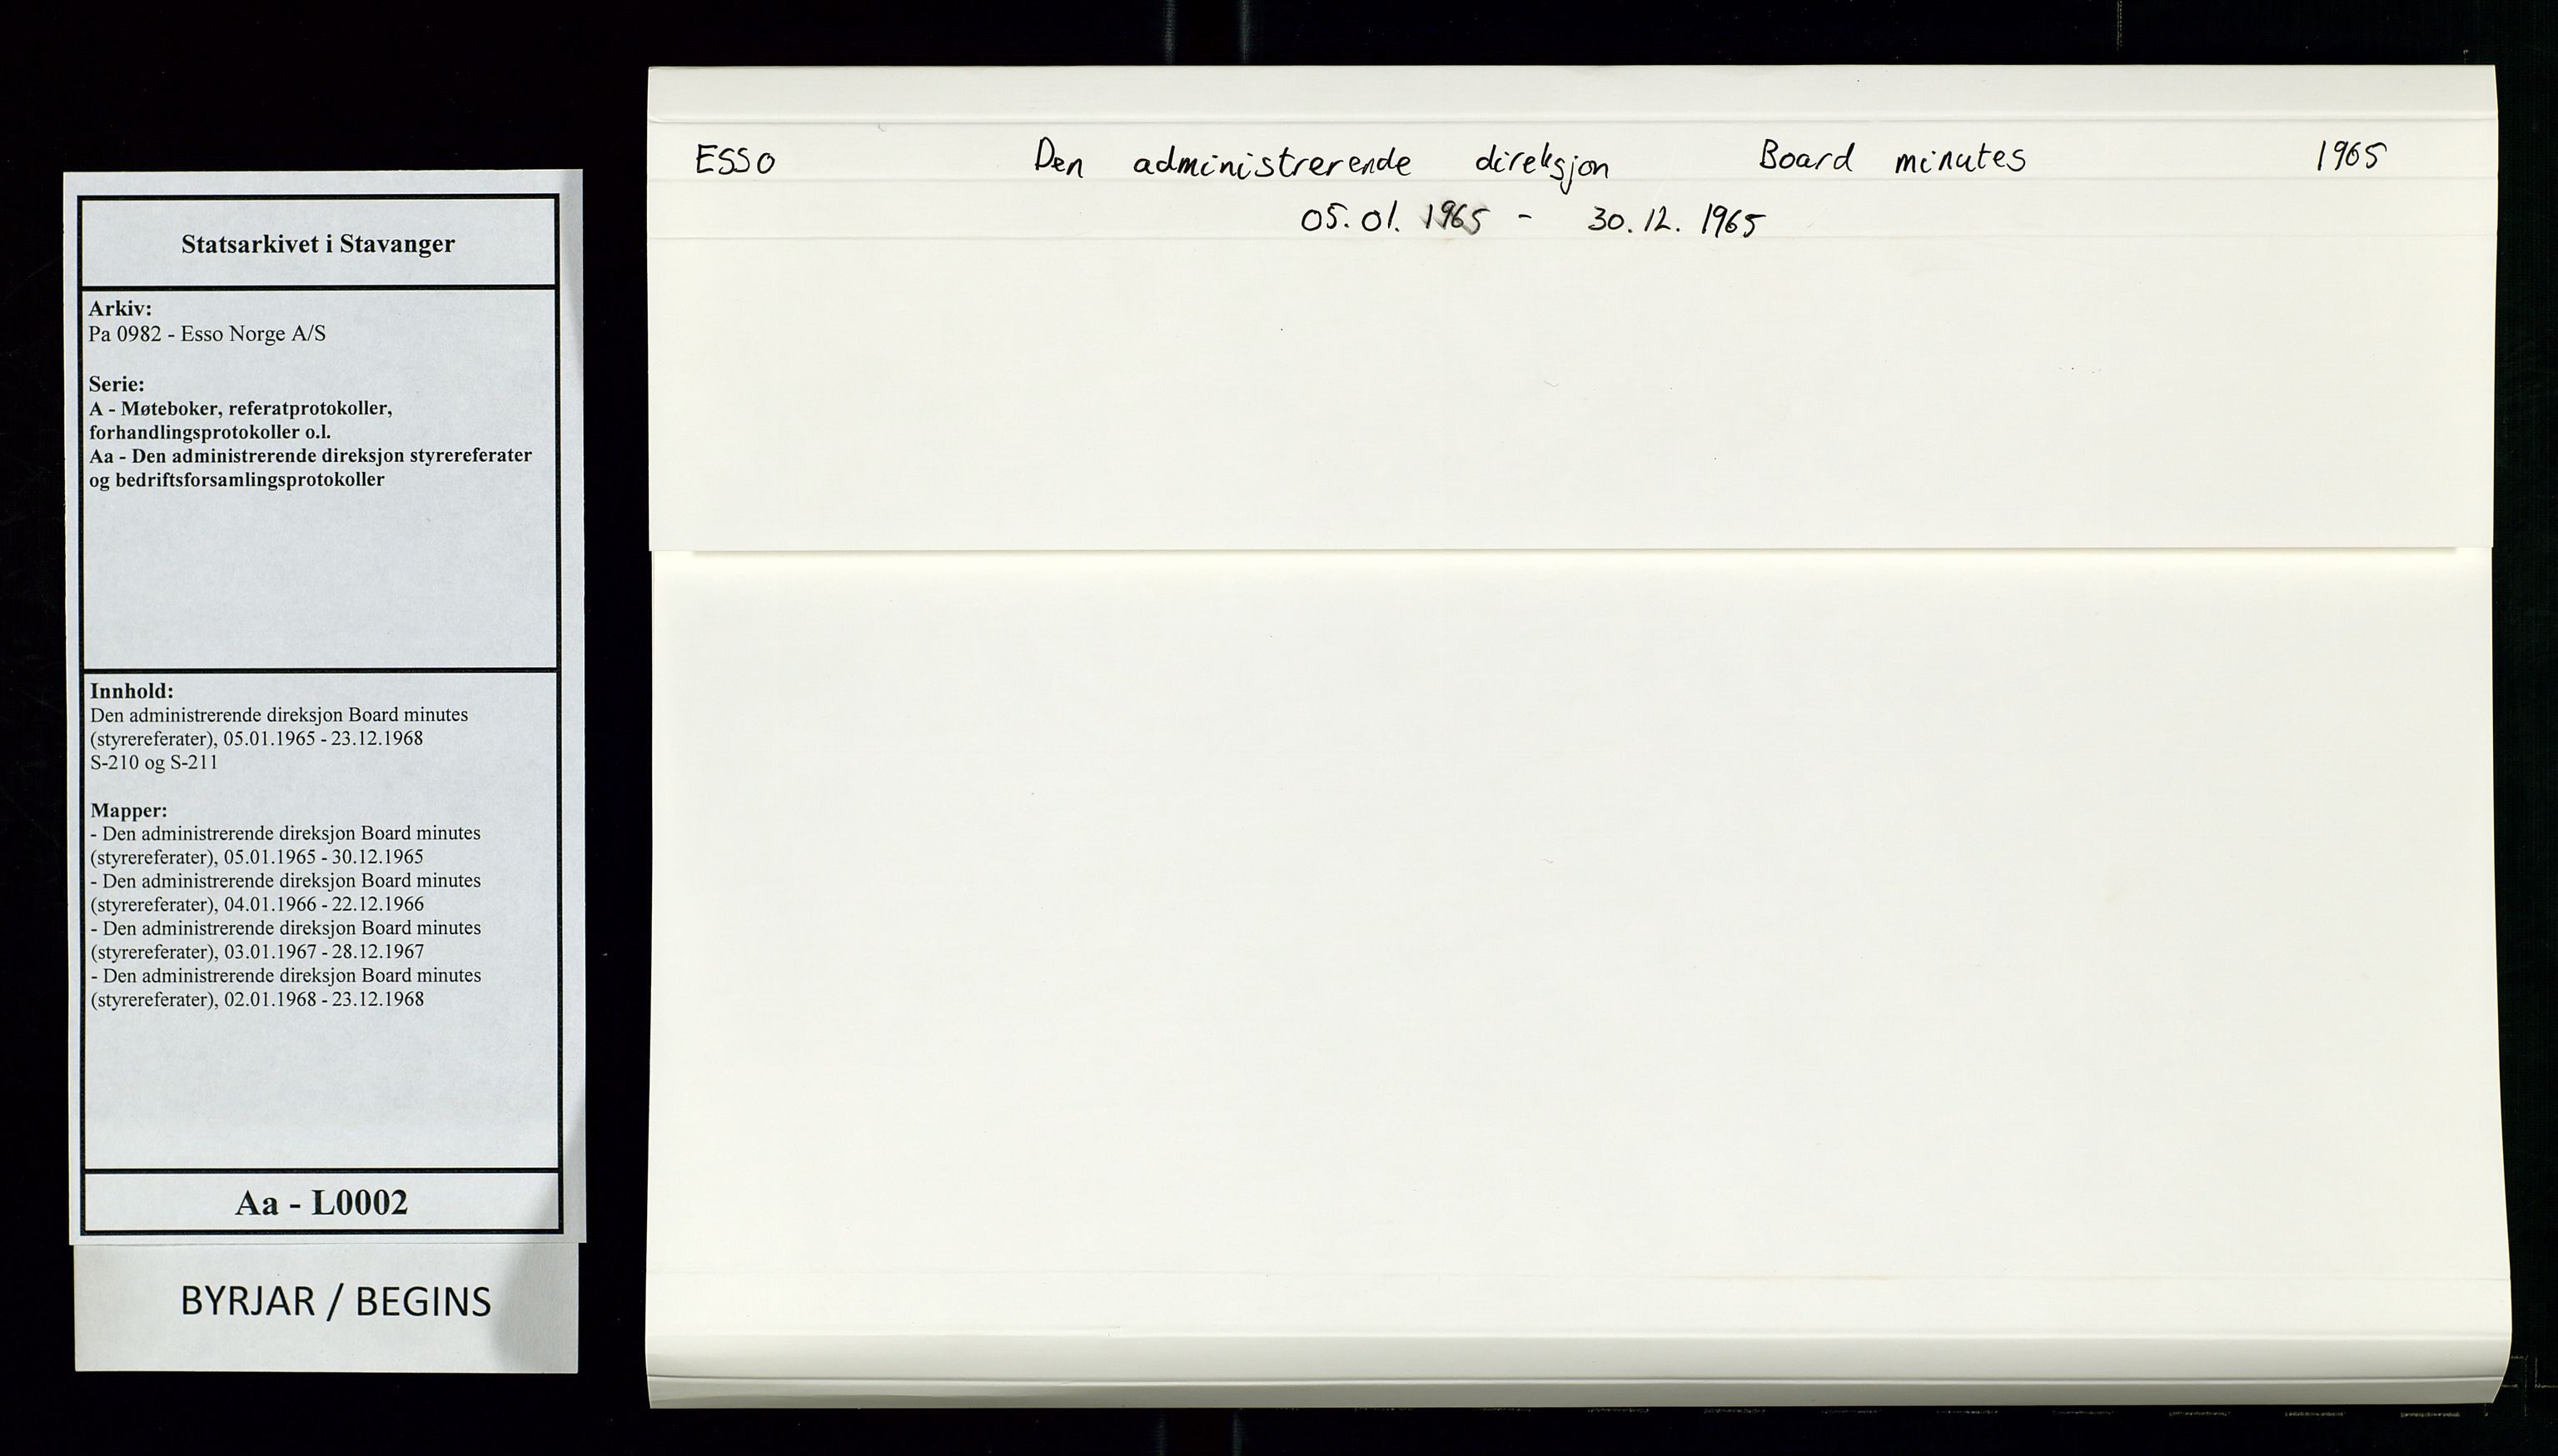 SAST, Pa 0982 - Esso Norge A/S, A/Aa/L0002: Den administrerende direksjon Board minutes (styrereferater), 1965, s. 1